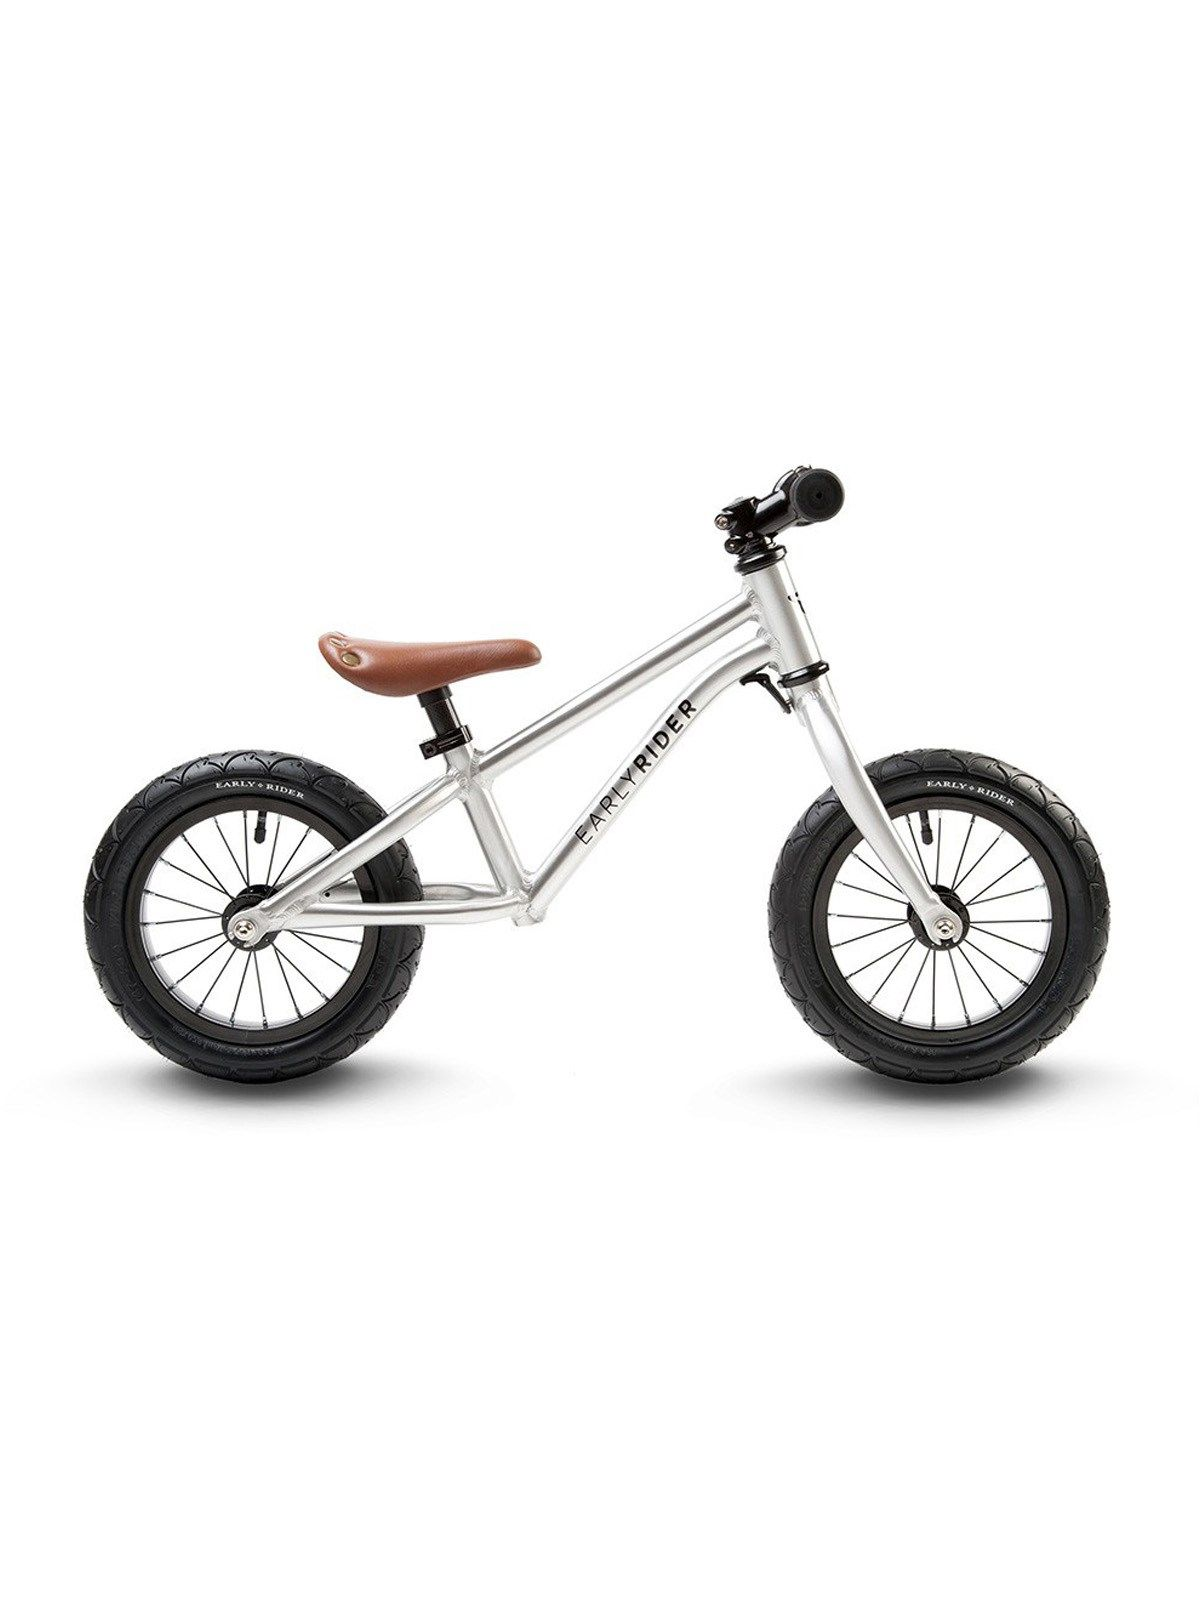 Sølv Early Rider Alley Runner 12 Inch-Aluminium Løbecykel | Early Rider | FreestyleXtreme | Danmark